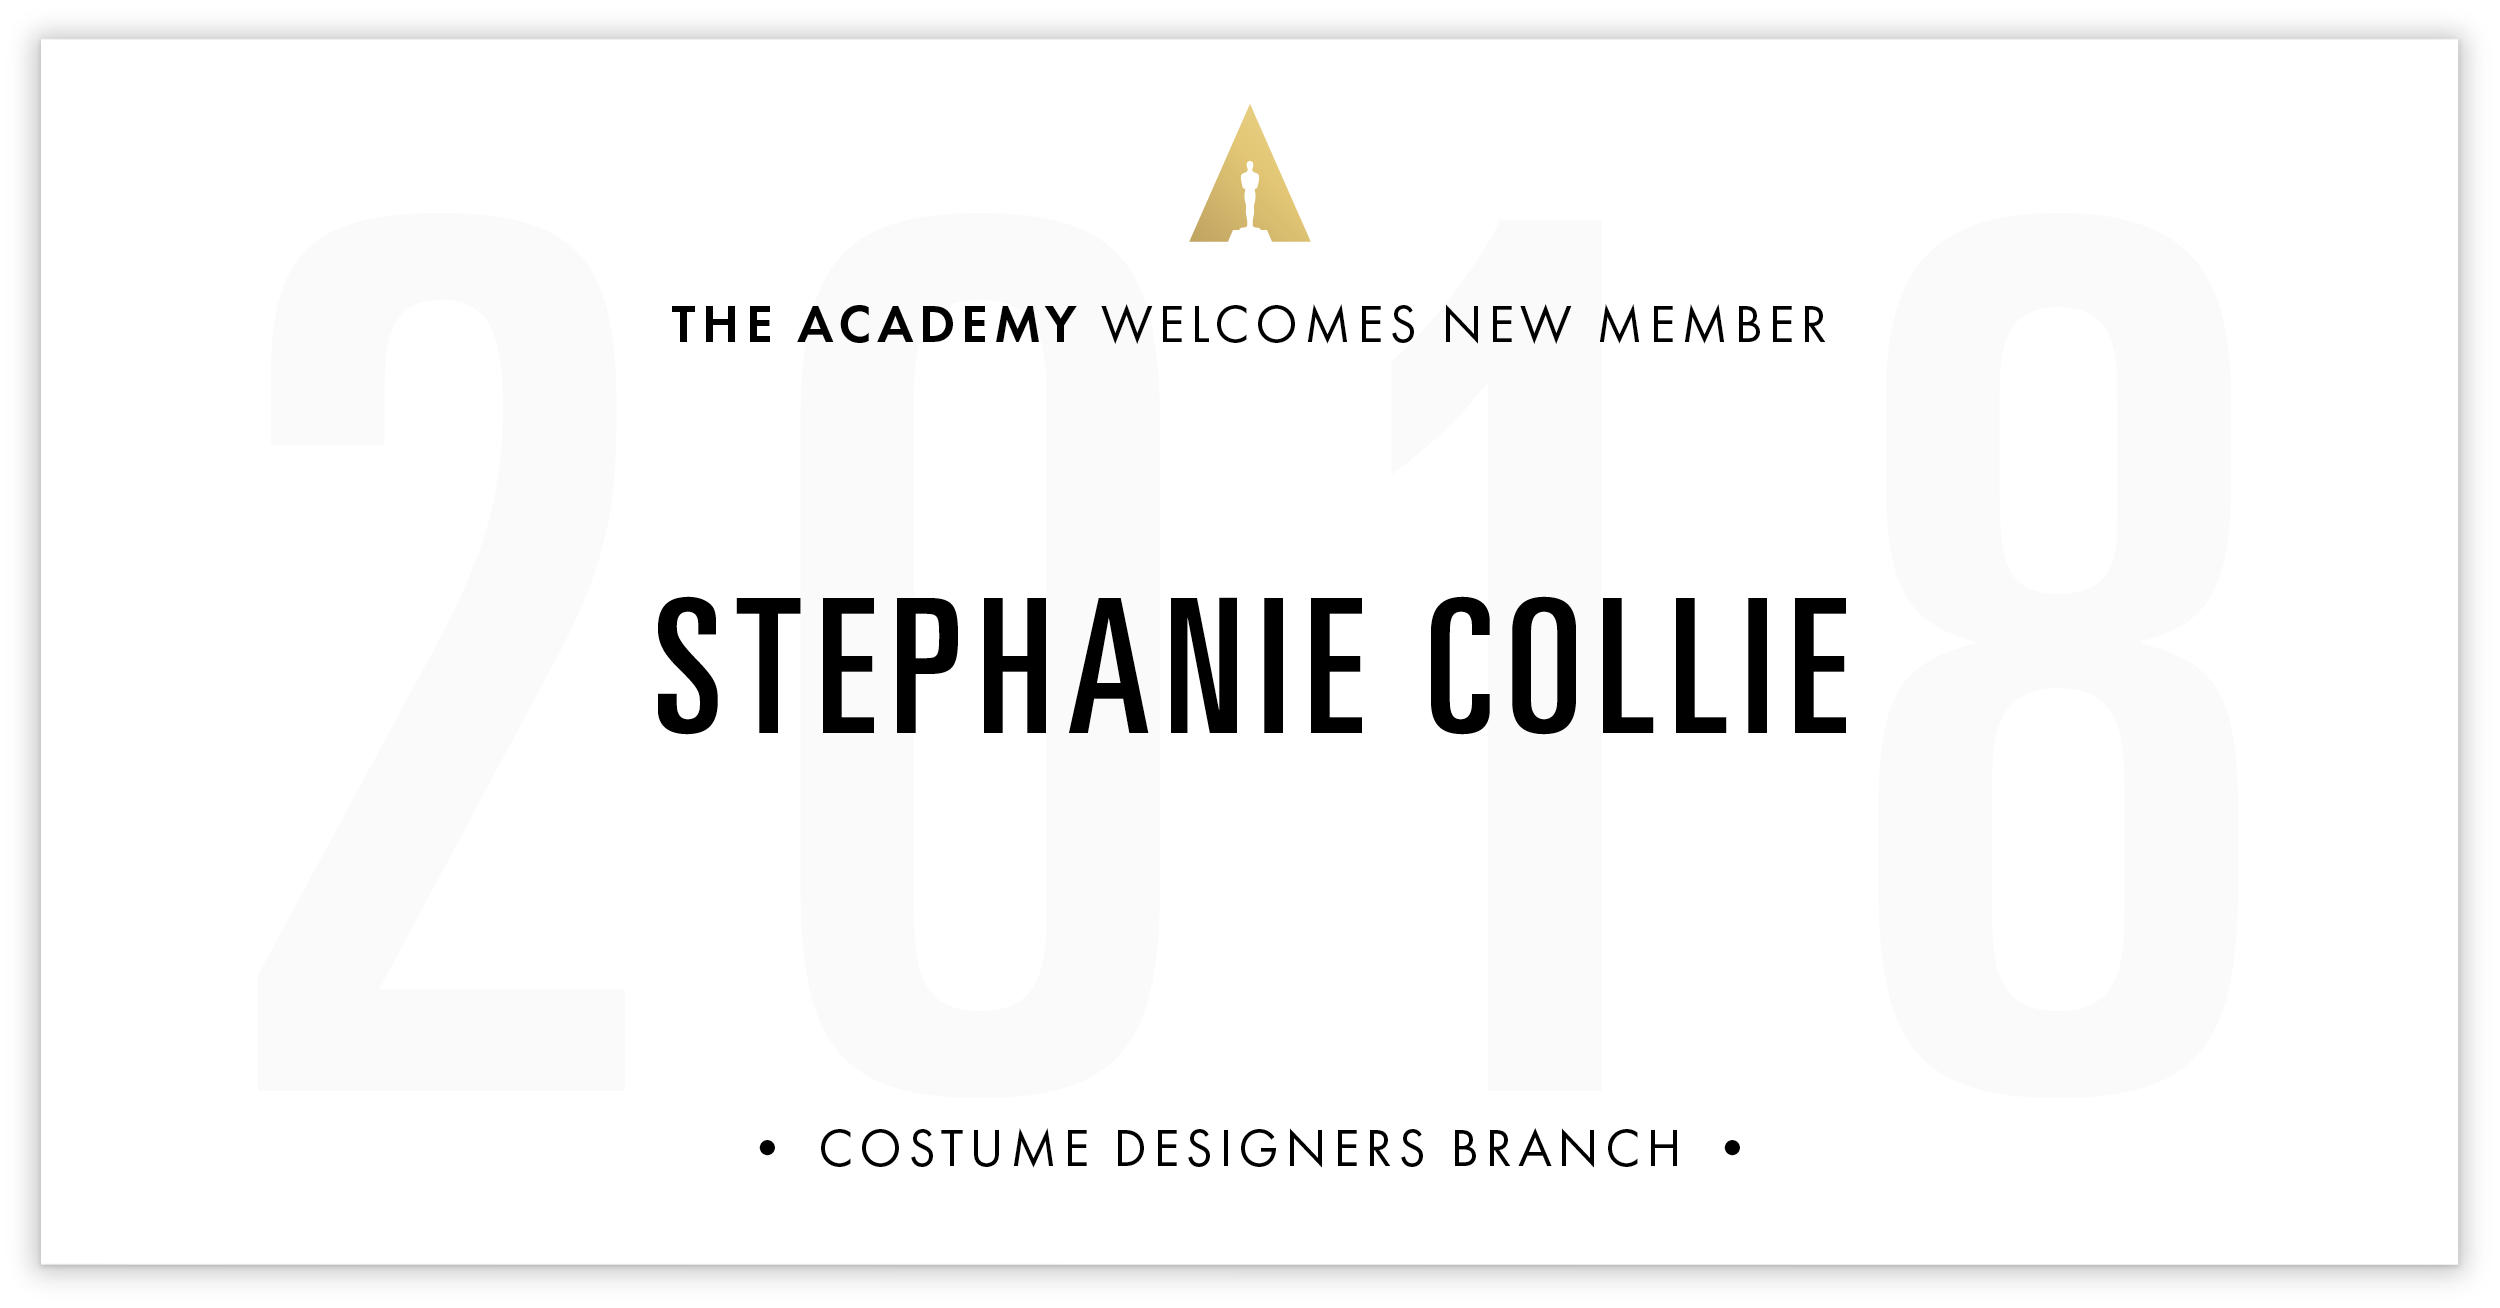 Stephanie Collie is invited!